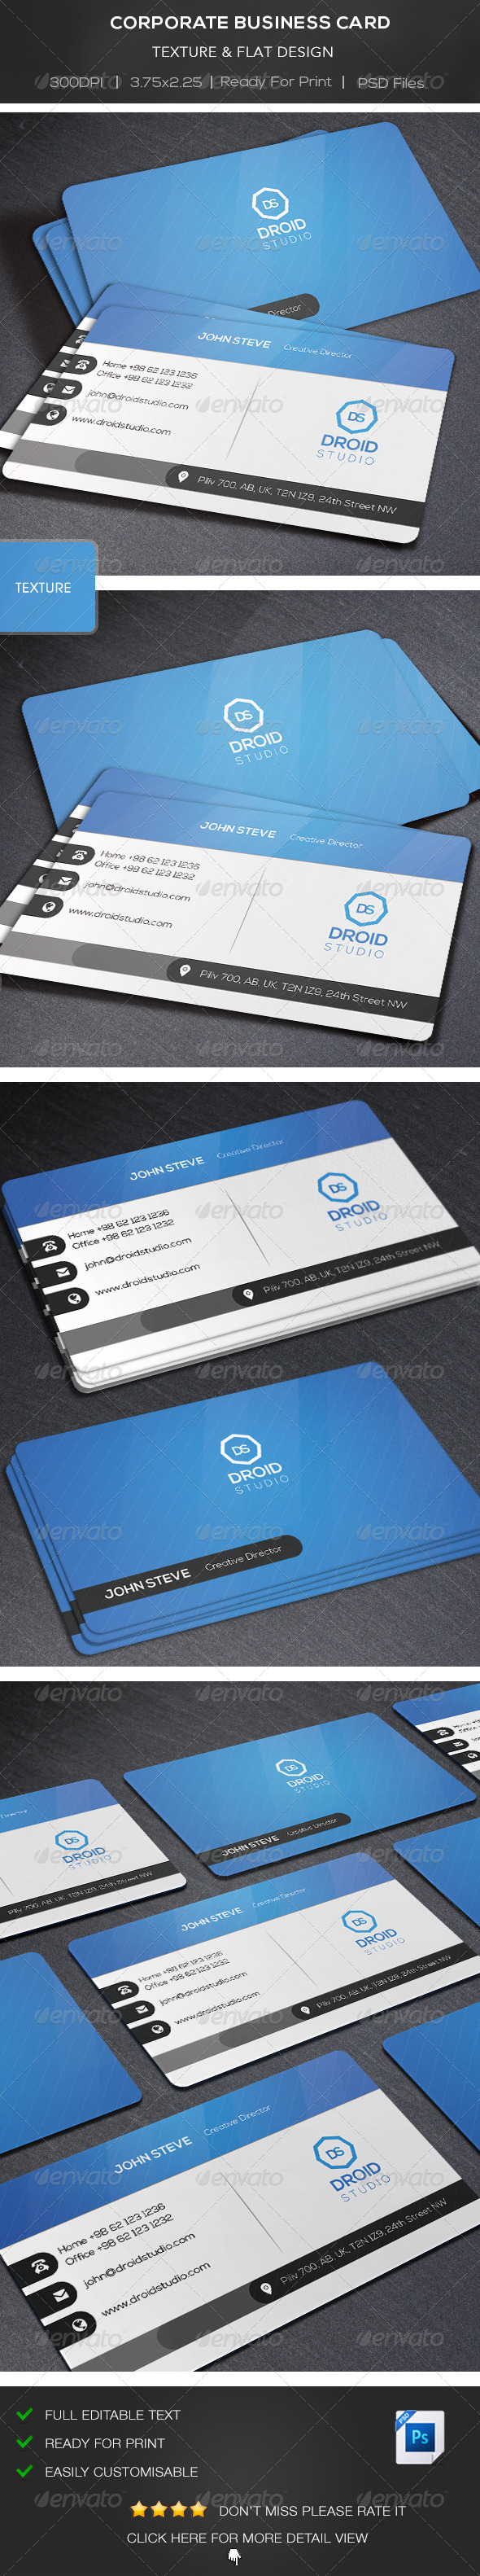 GraphicRiver Corporate Business Card 8518398